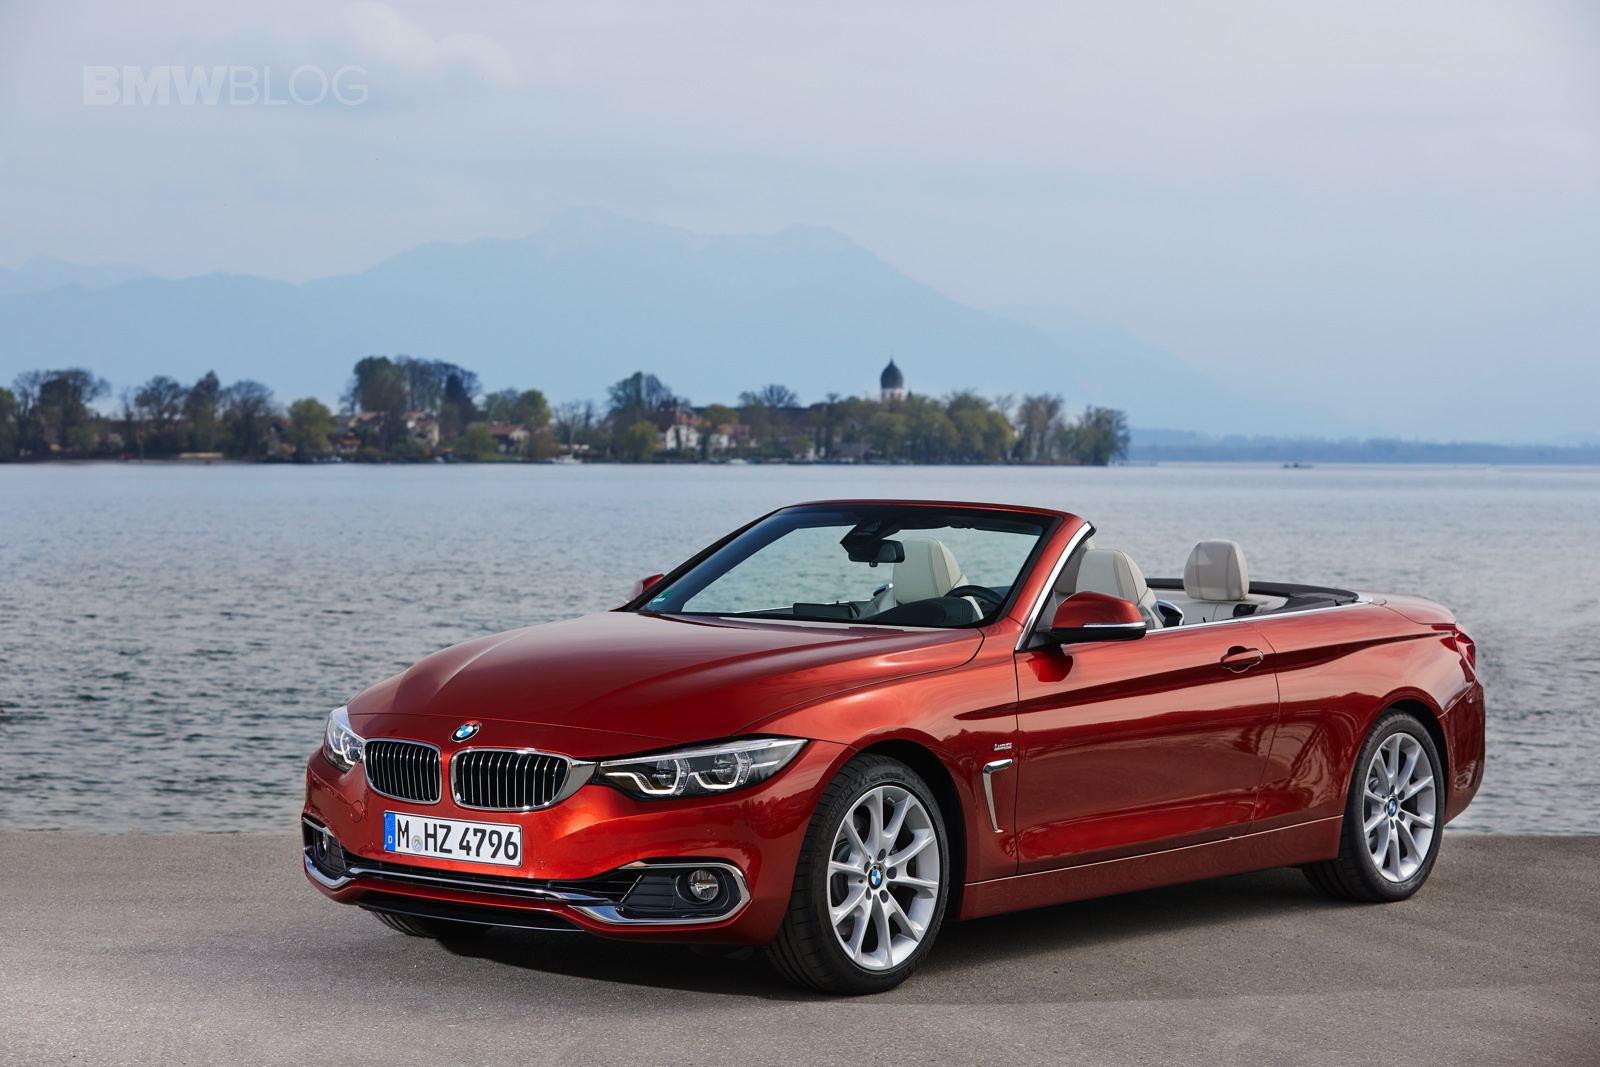 2017 BMW 4 Series Convertible test drive 30